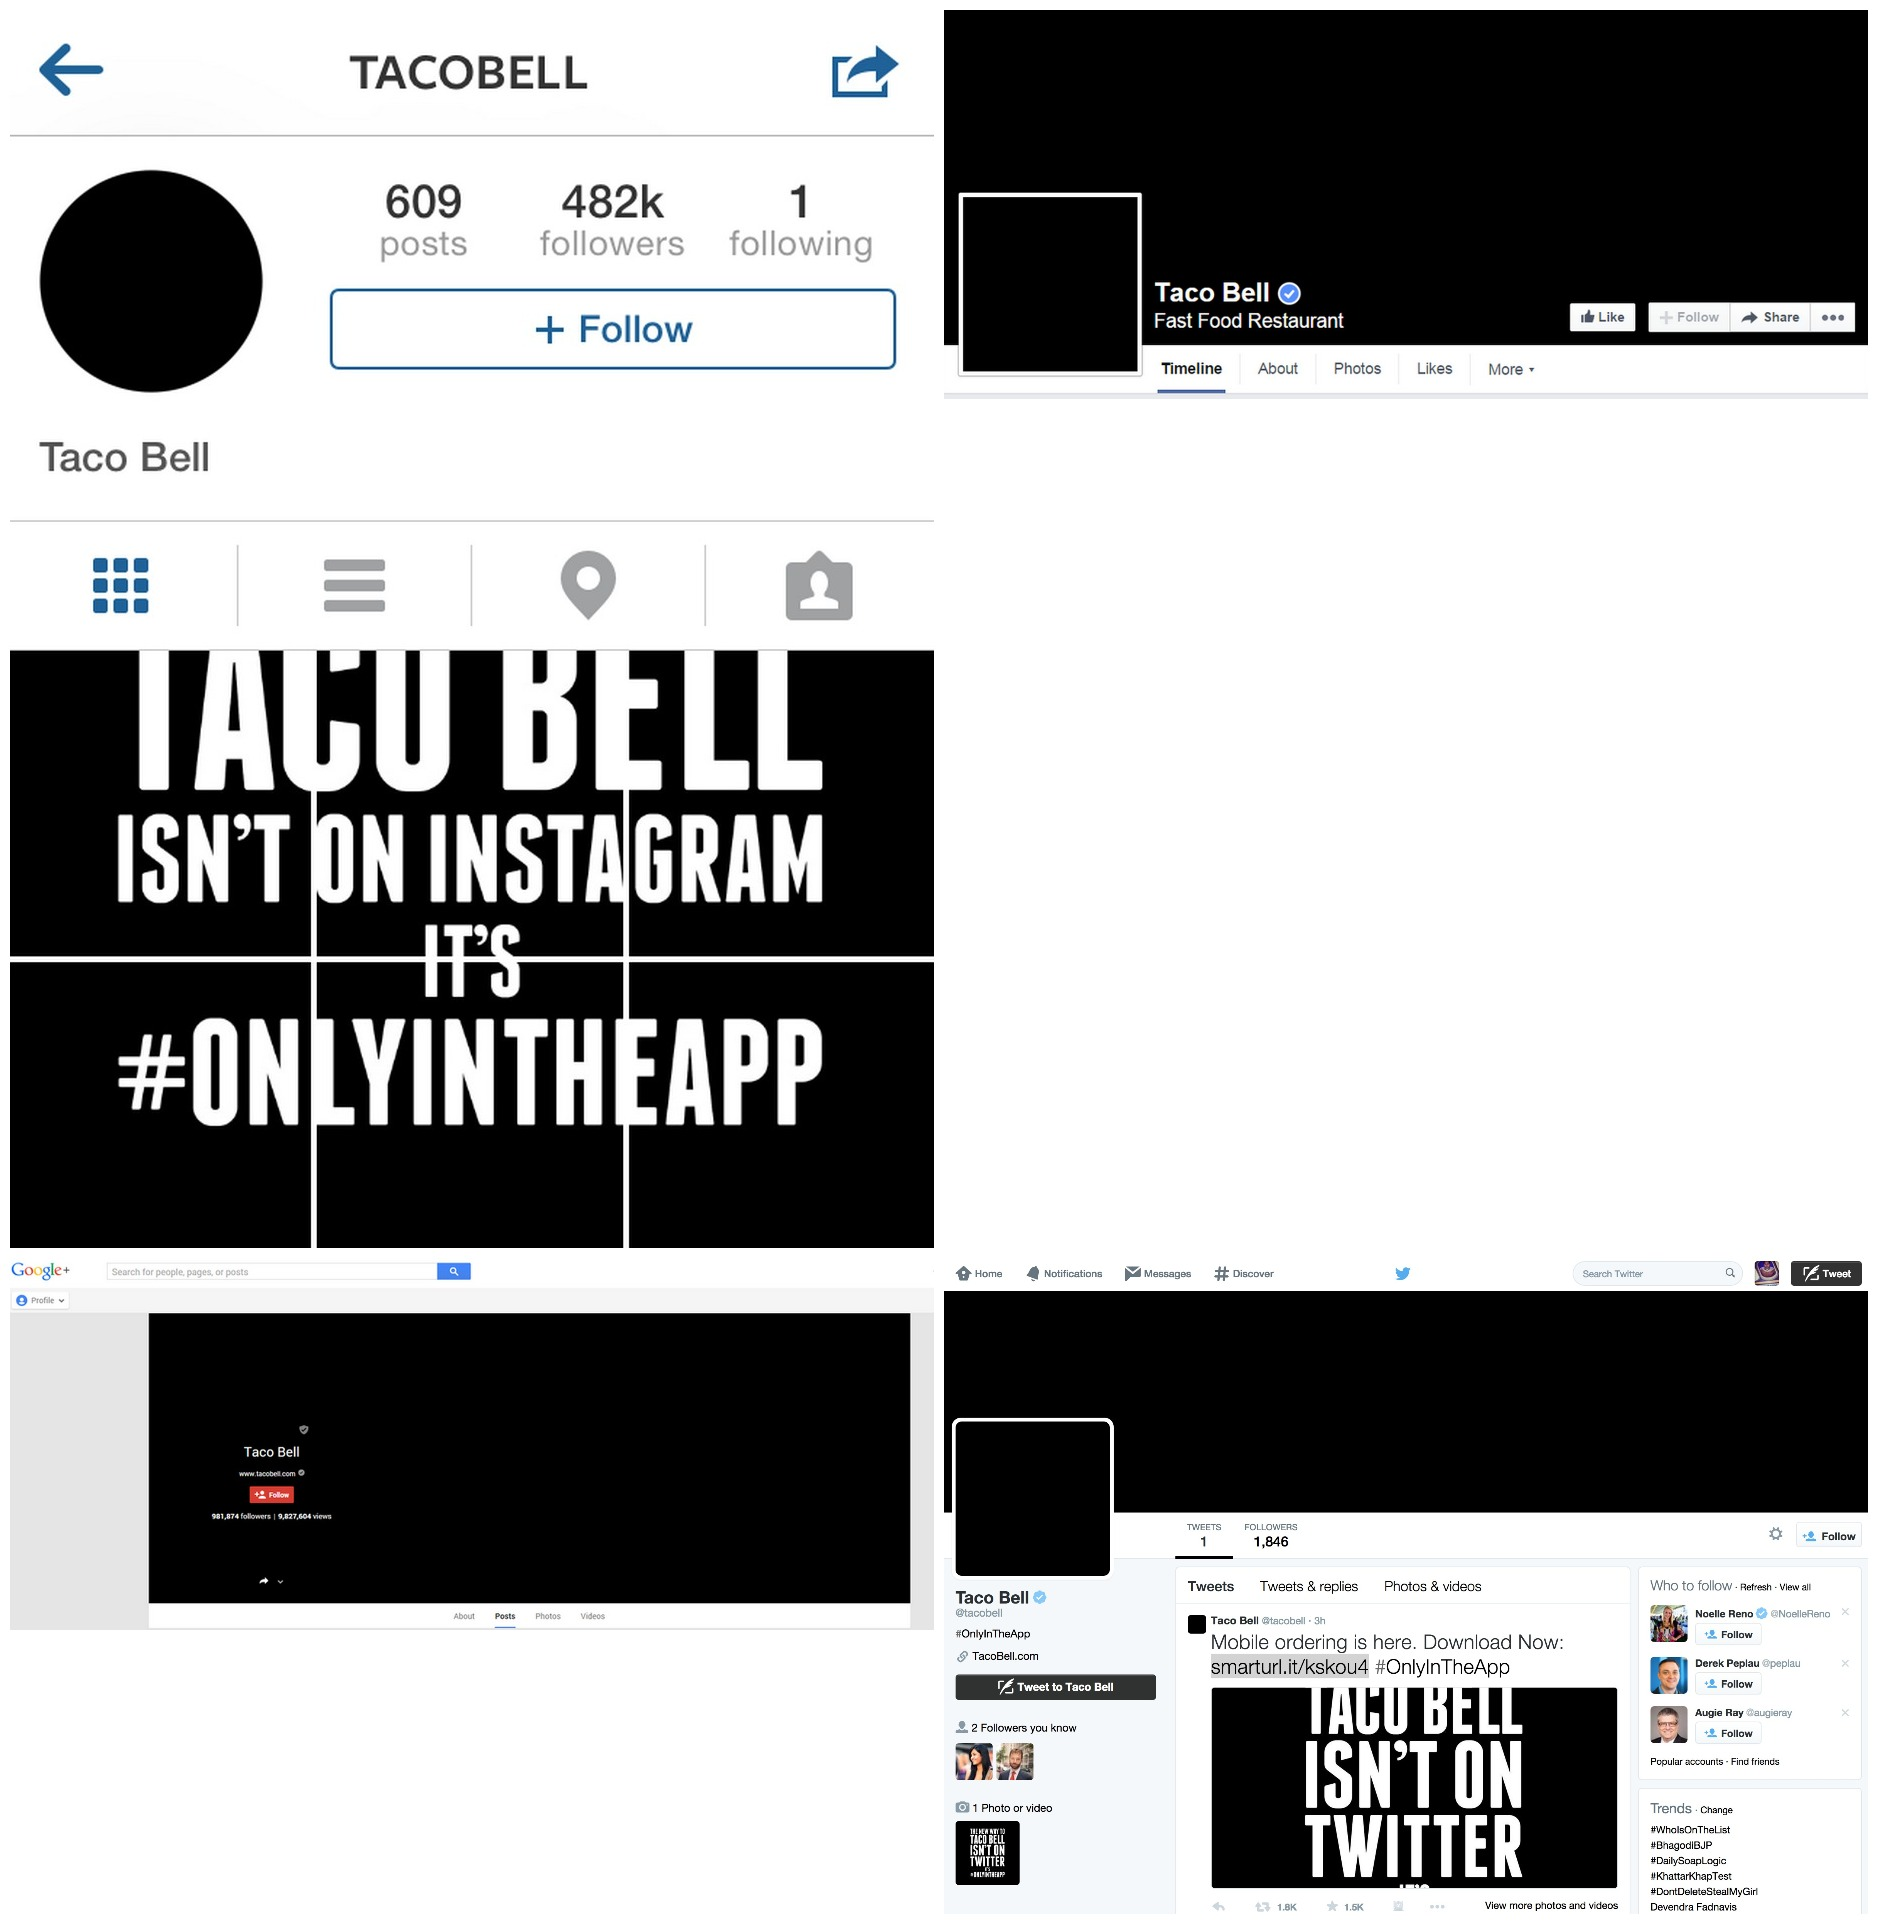 Taco Bell | Vishal Mehra and Co.